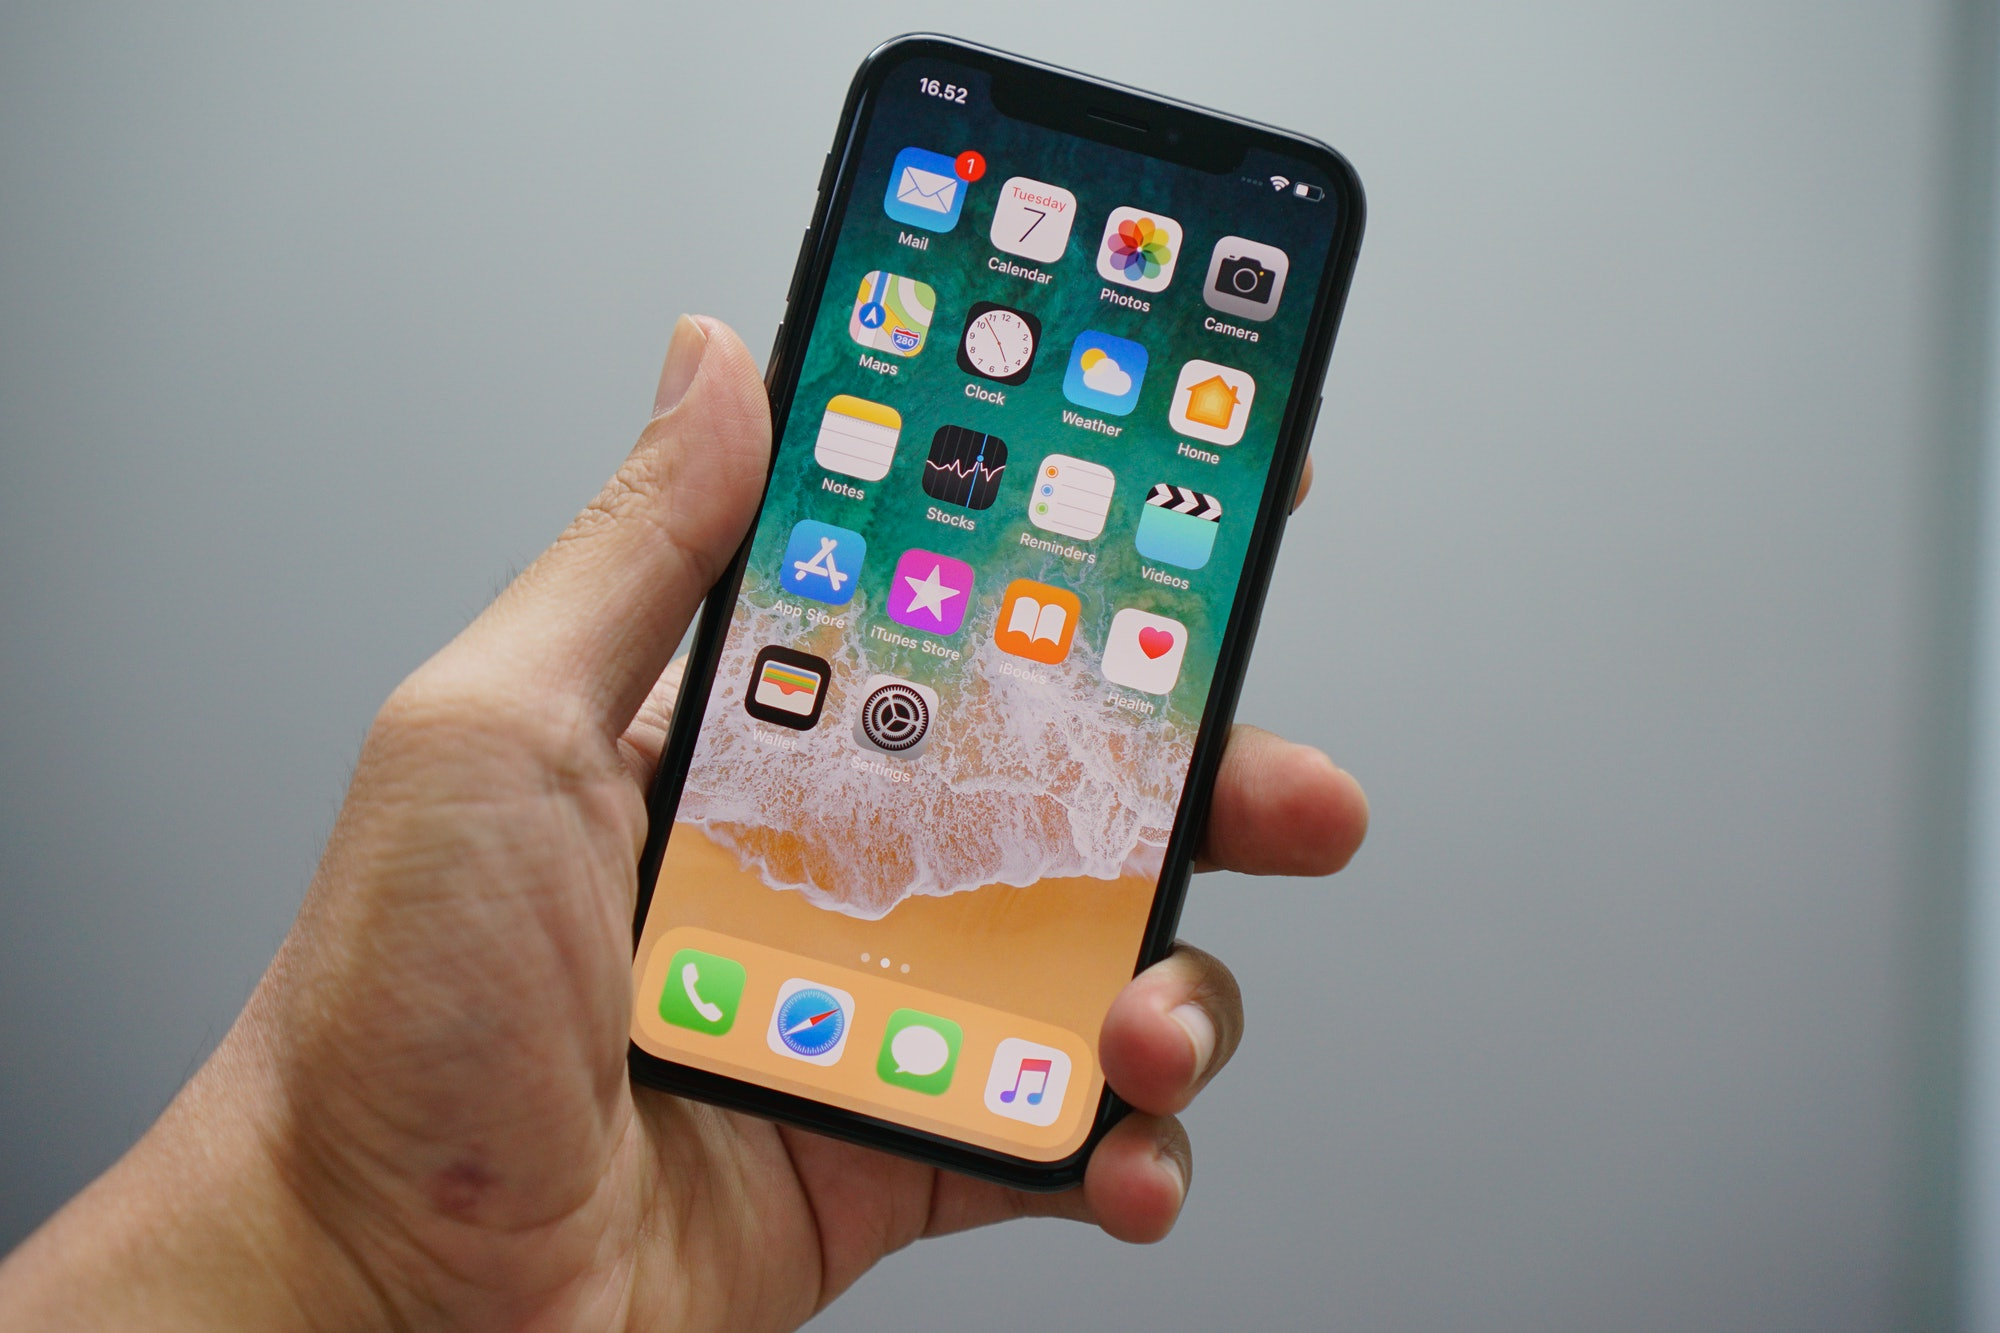 iPhone X in hand.